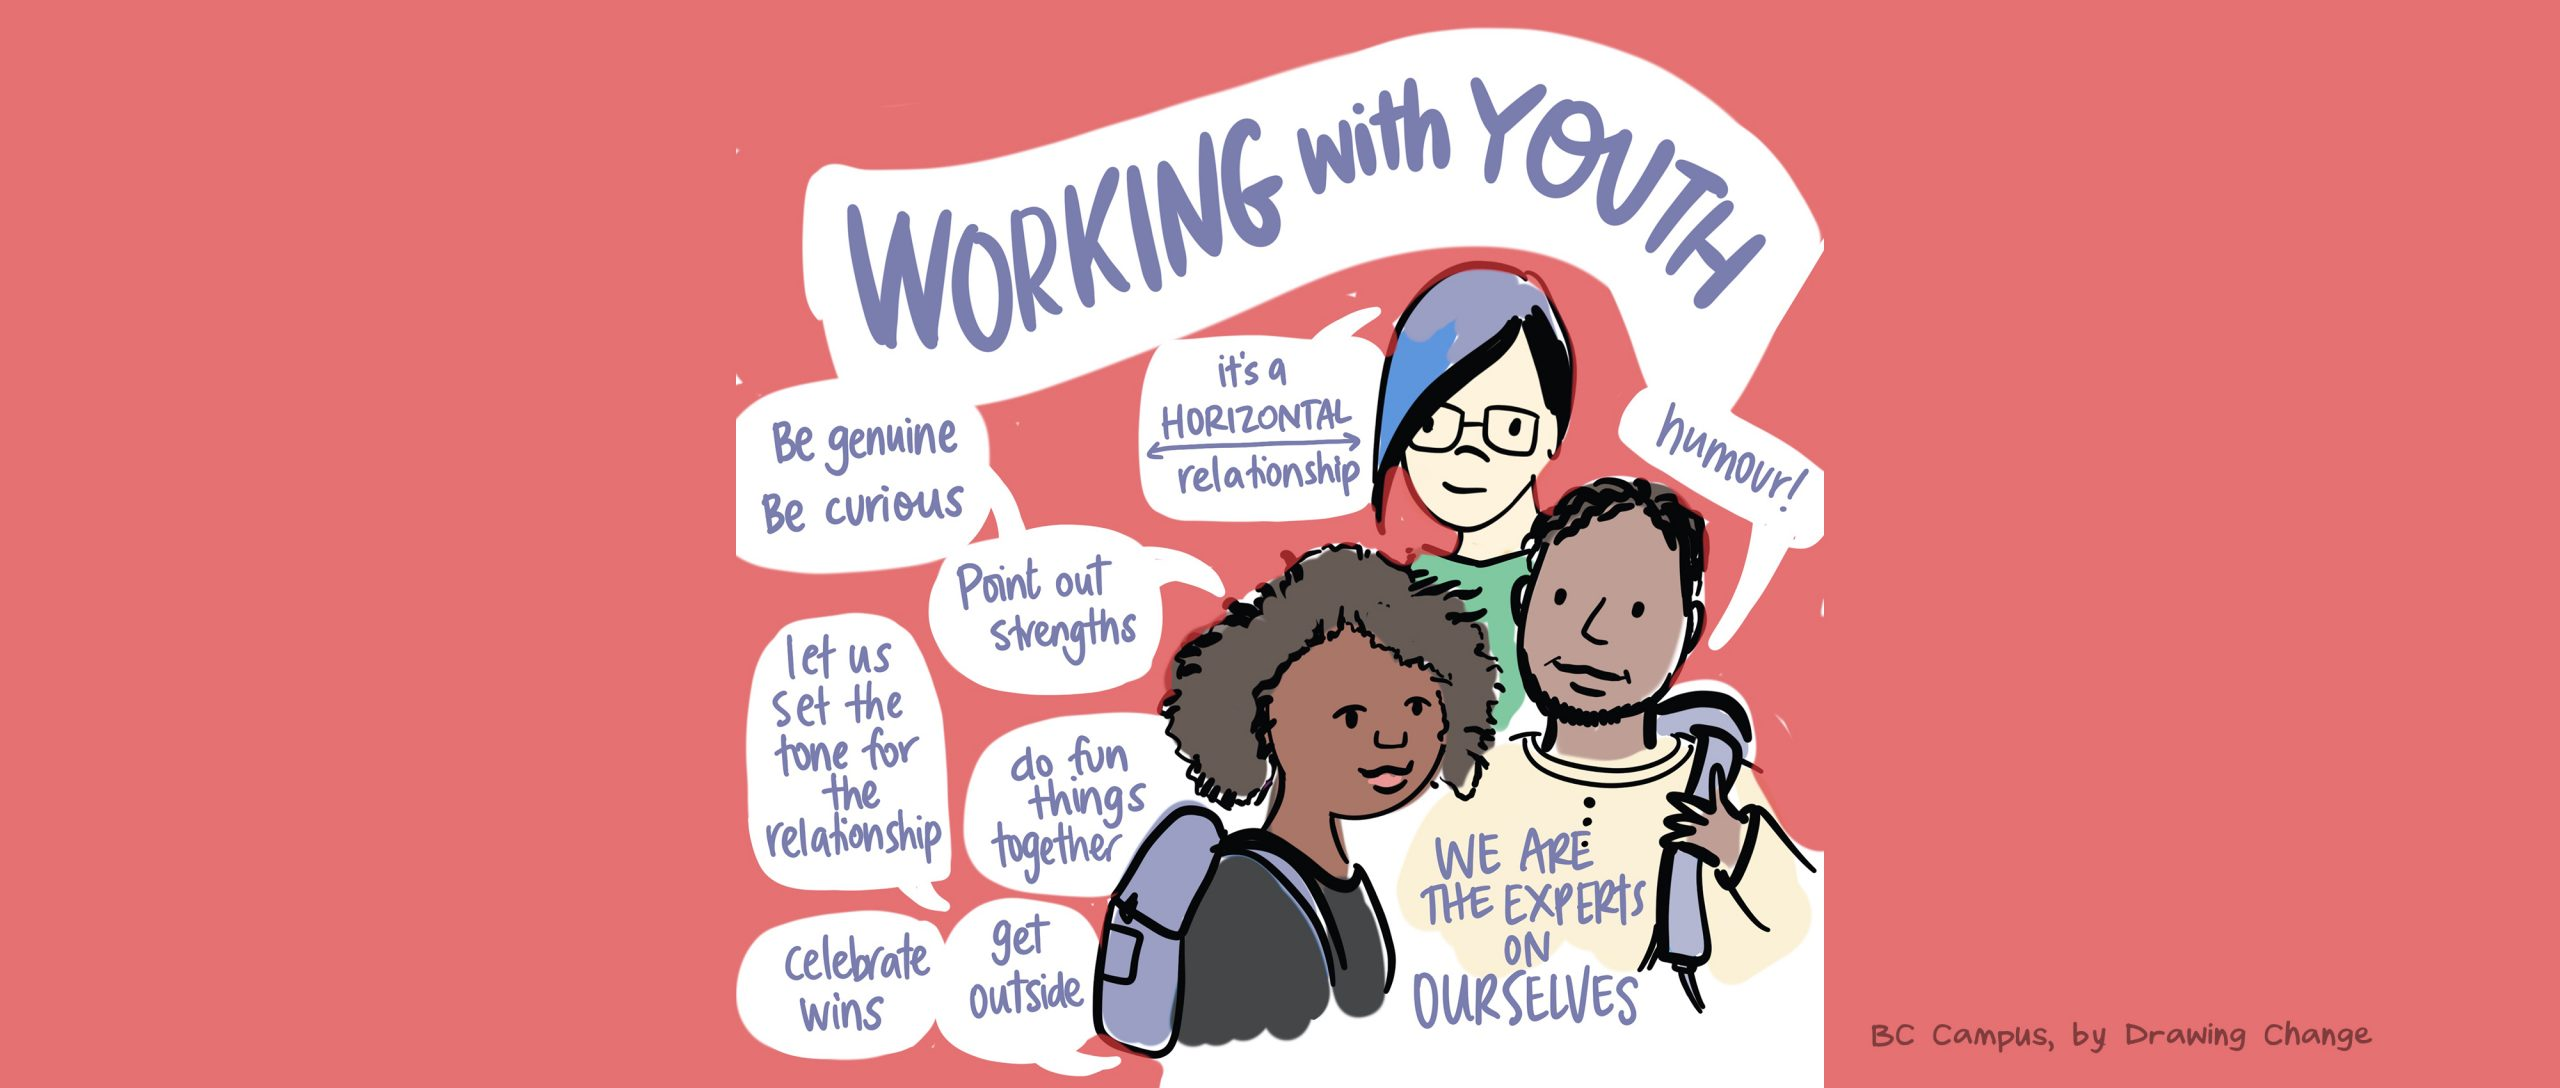 working with youth peer support curriculum bc campus